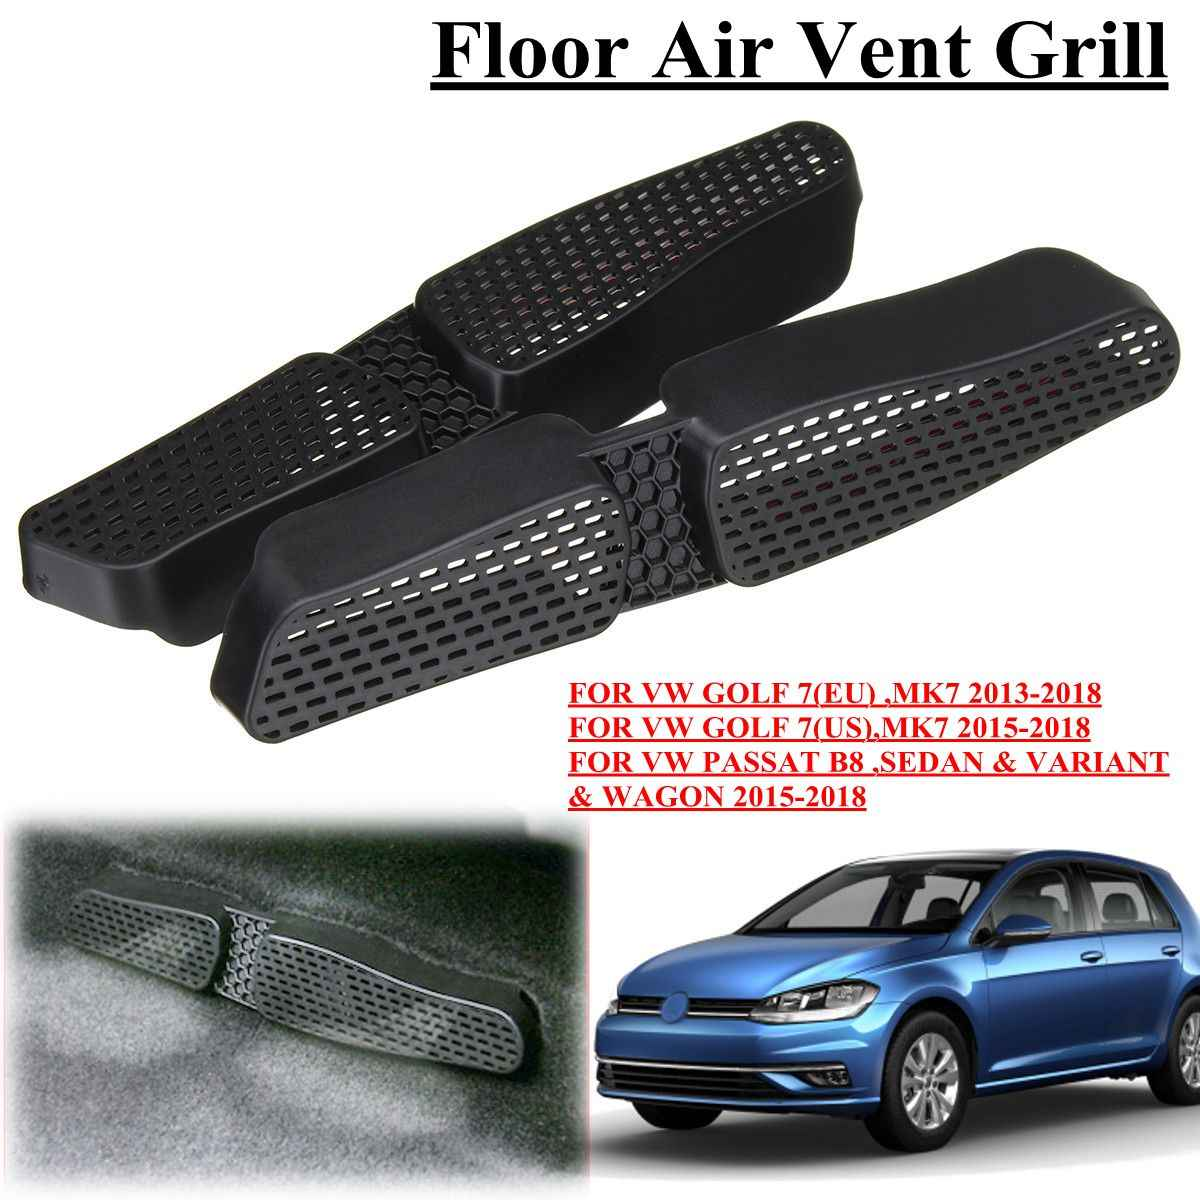 Car Under Seat Floor Air Duct Vent AC Outlet Protective Cover Grille with  adhesive For VW Golf 7 MK7 Passat B8 EU ES